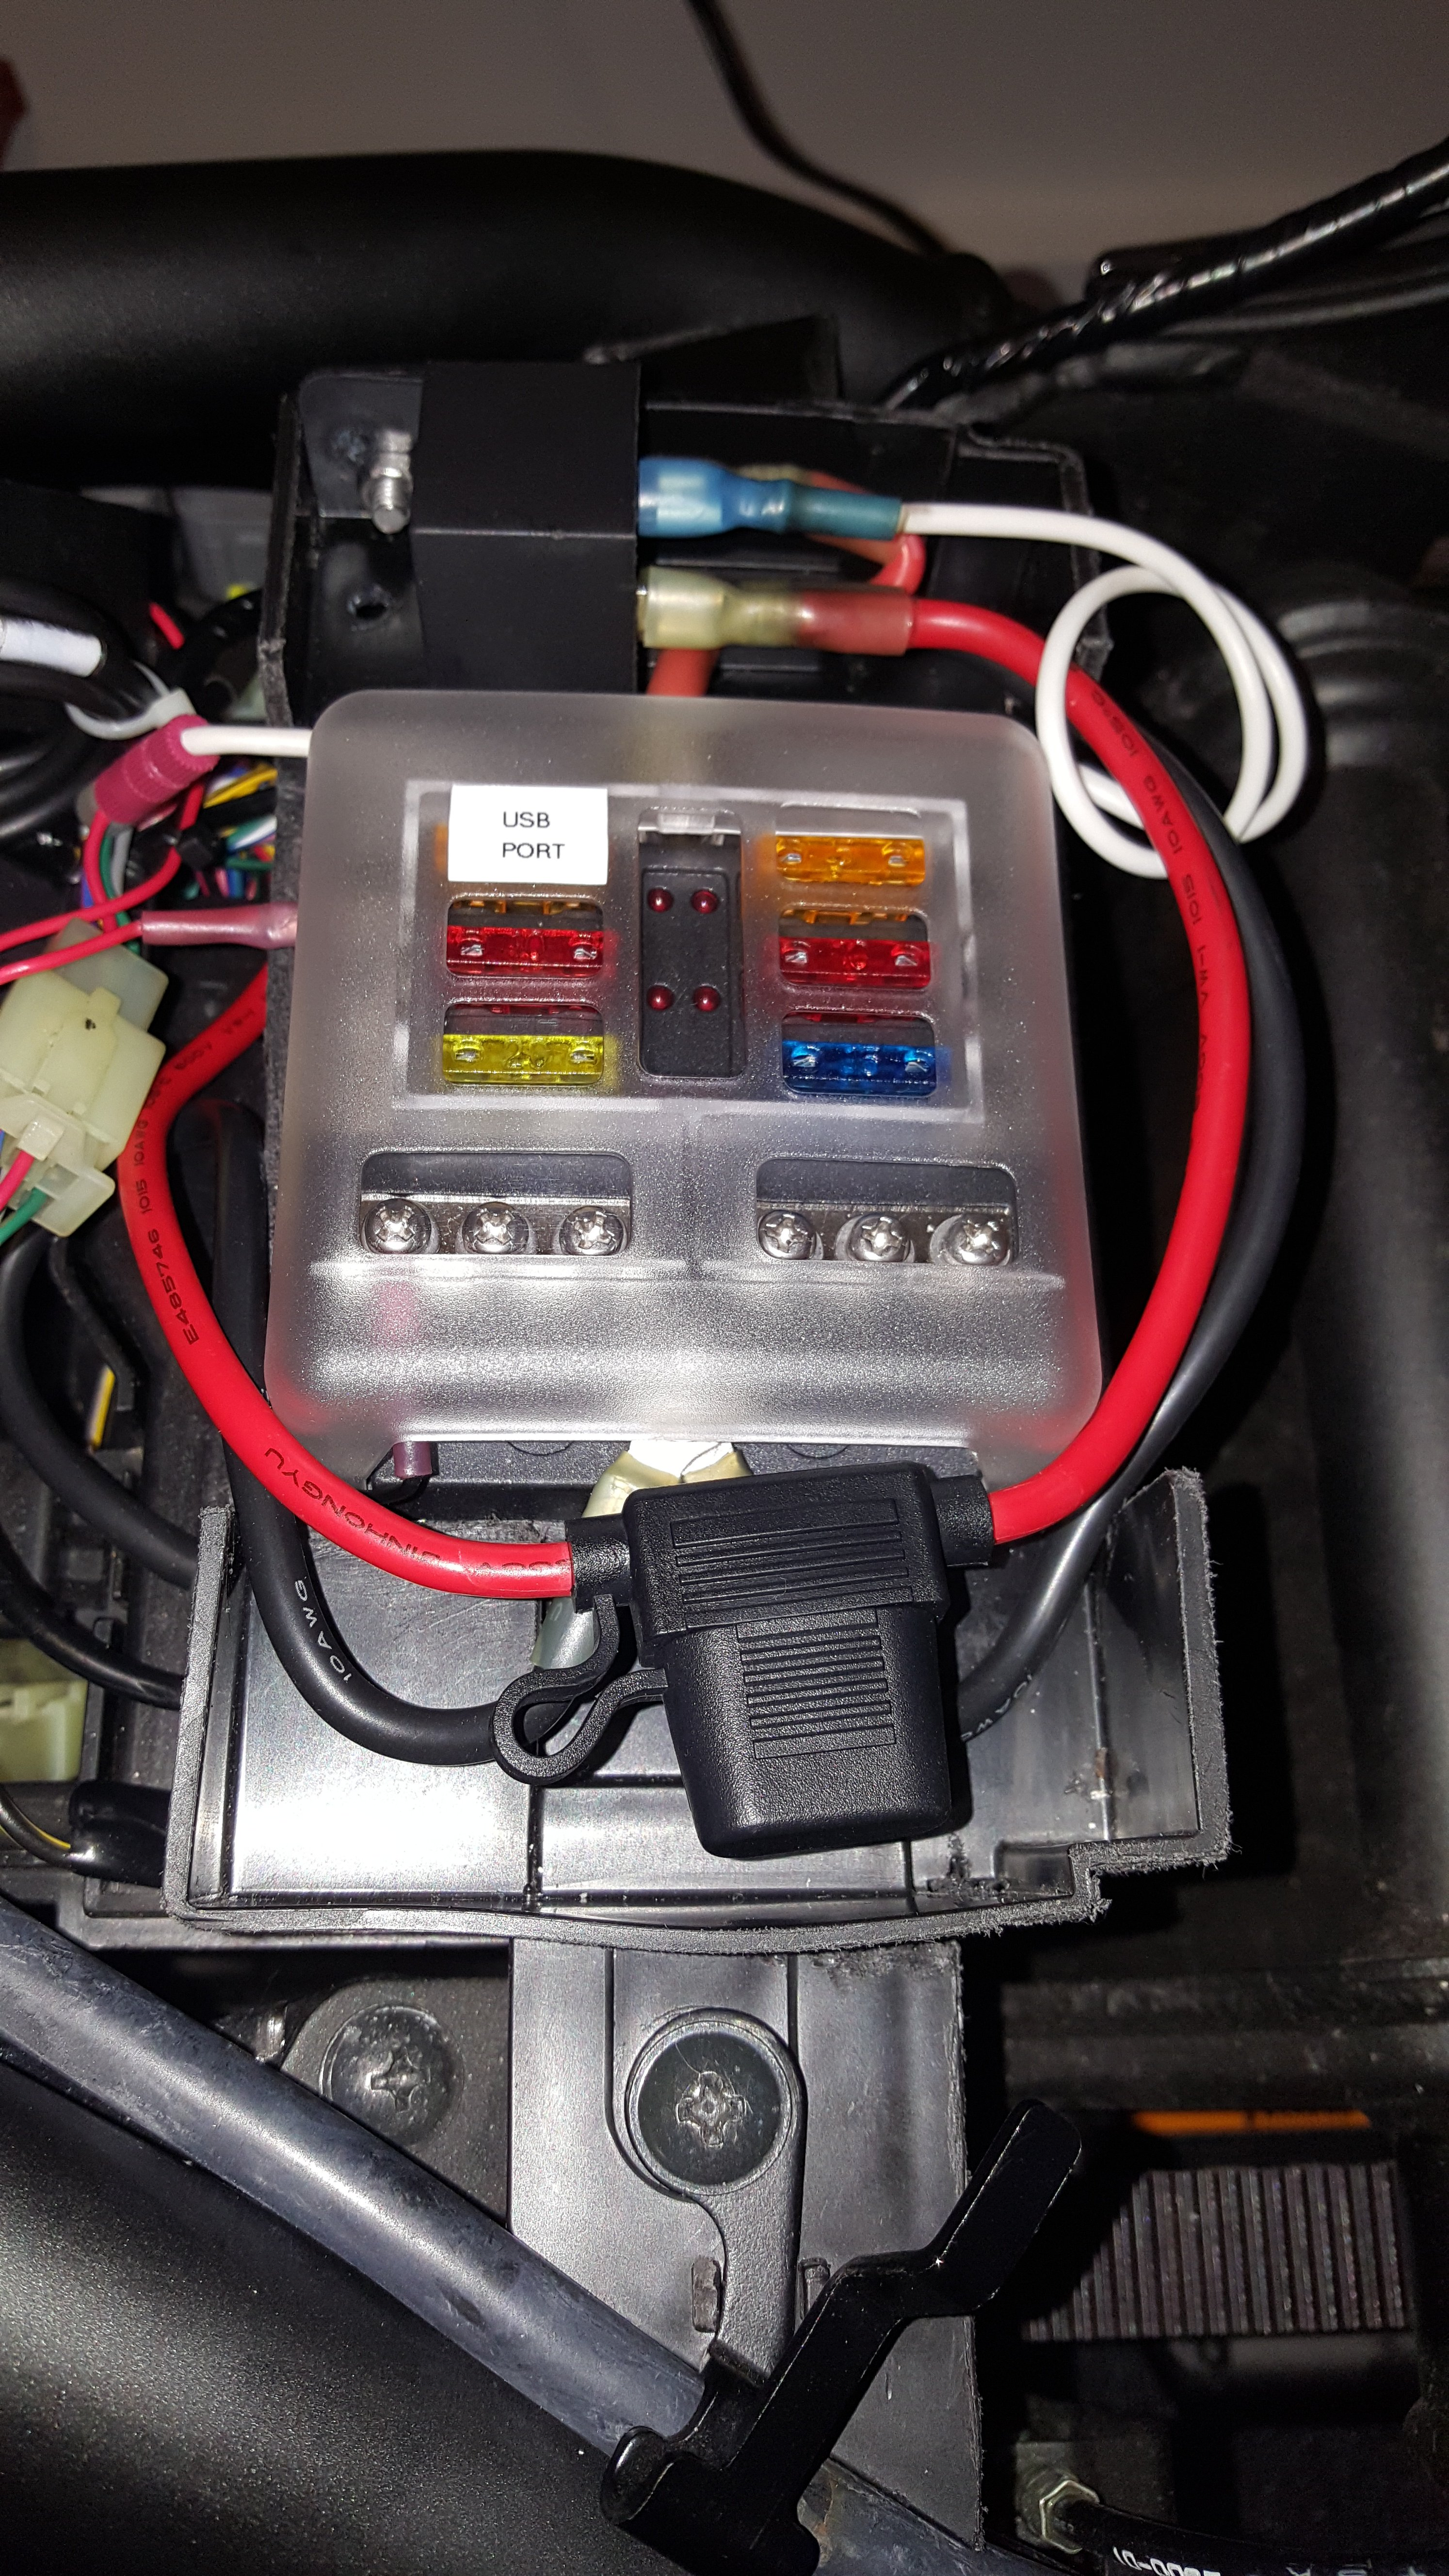 Kawasaki Vulcan 900 Fuse Box Wiring Diagram Appearance A Appearance A Saleebalocchi It